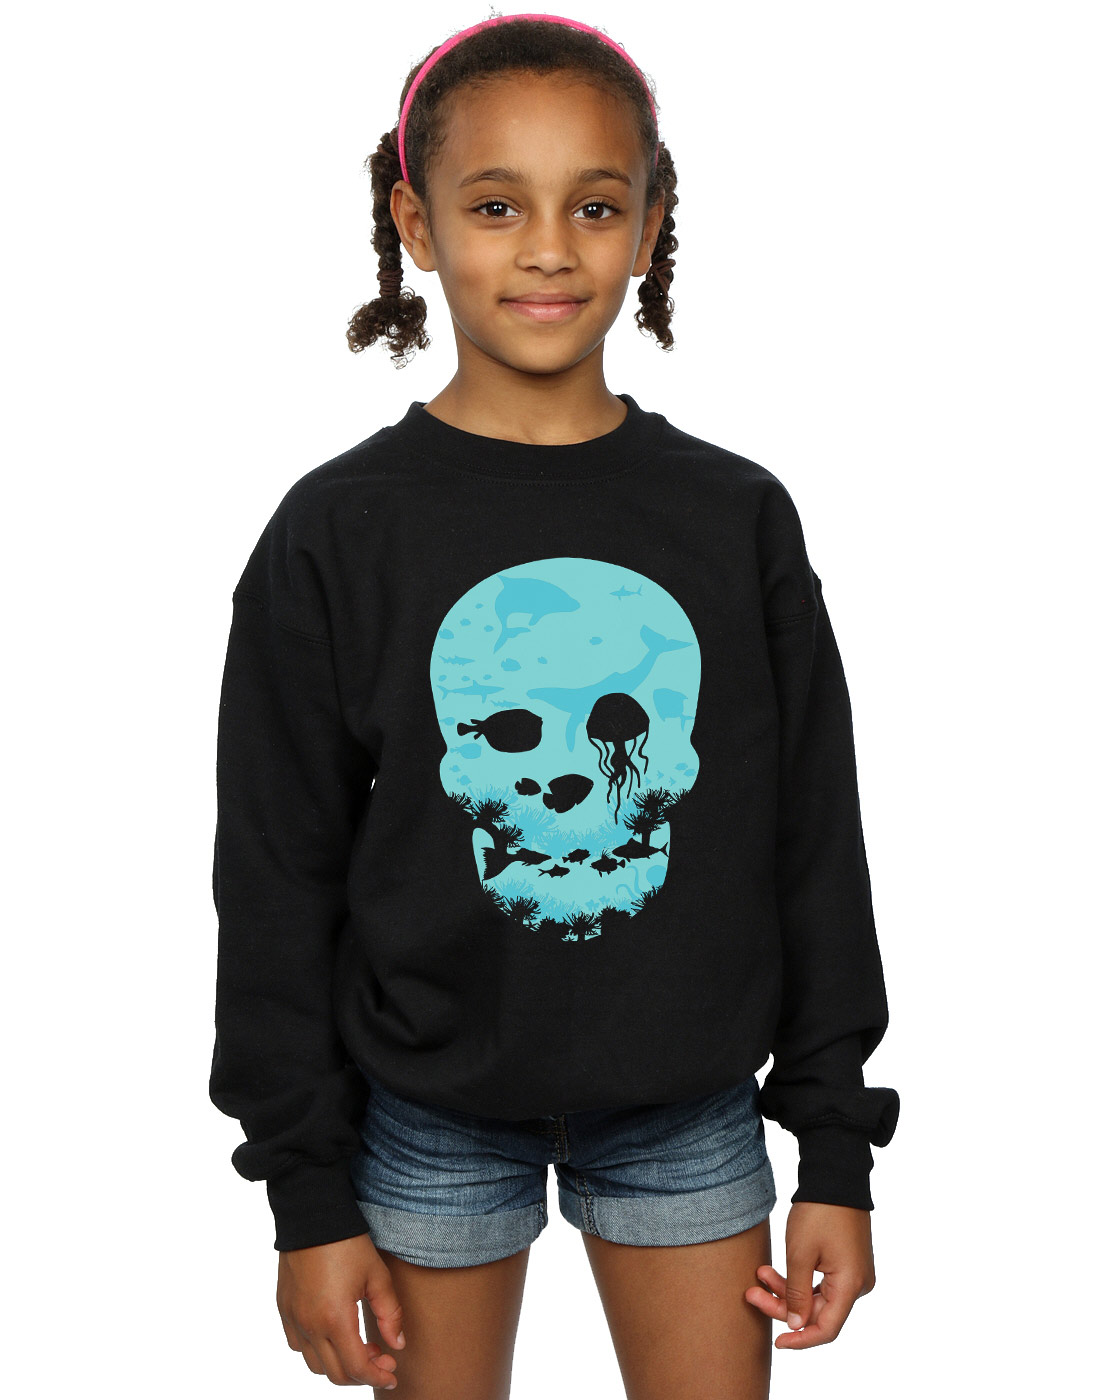 Absolute Cult Drewbacca Girls Dead Sea Sweatshirt